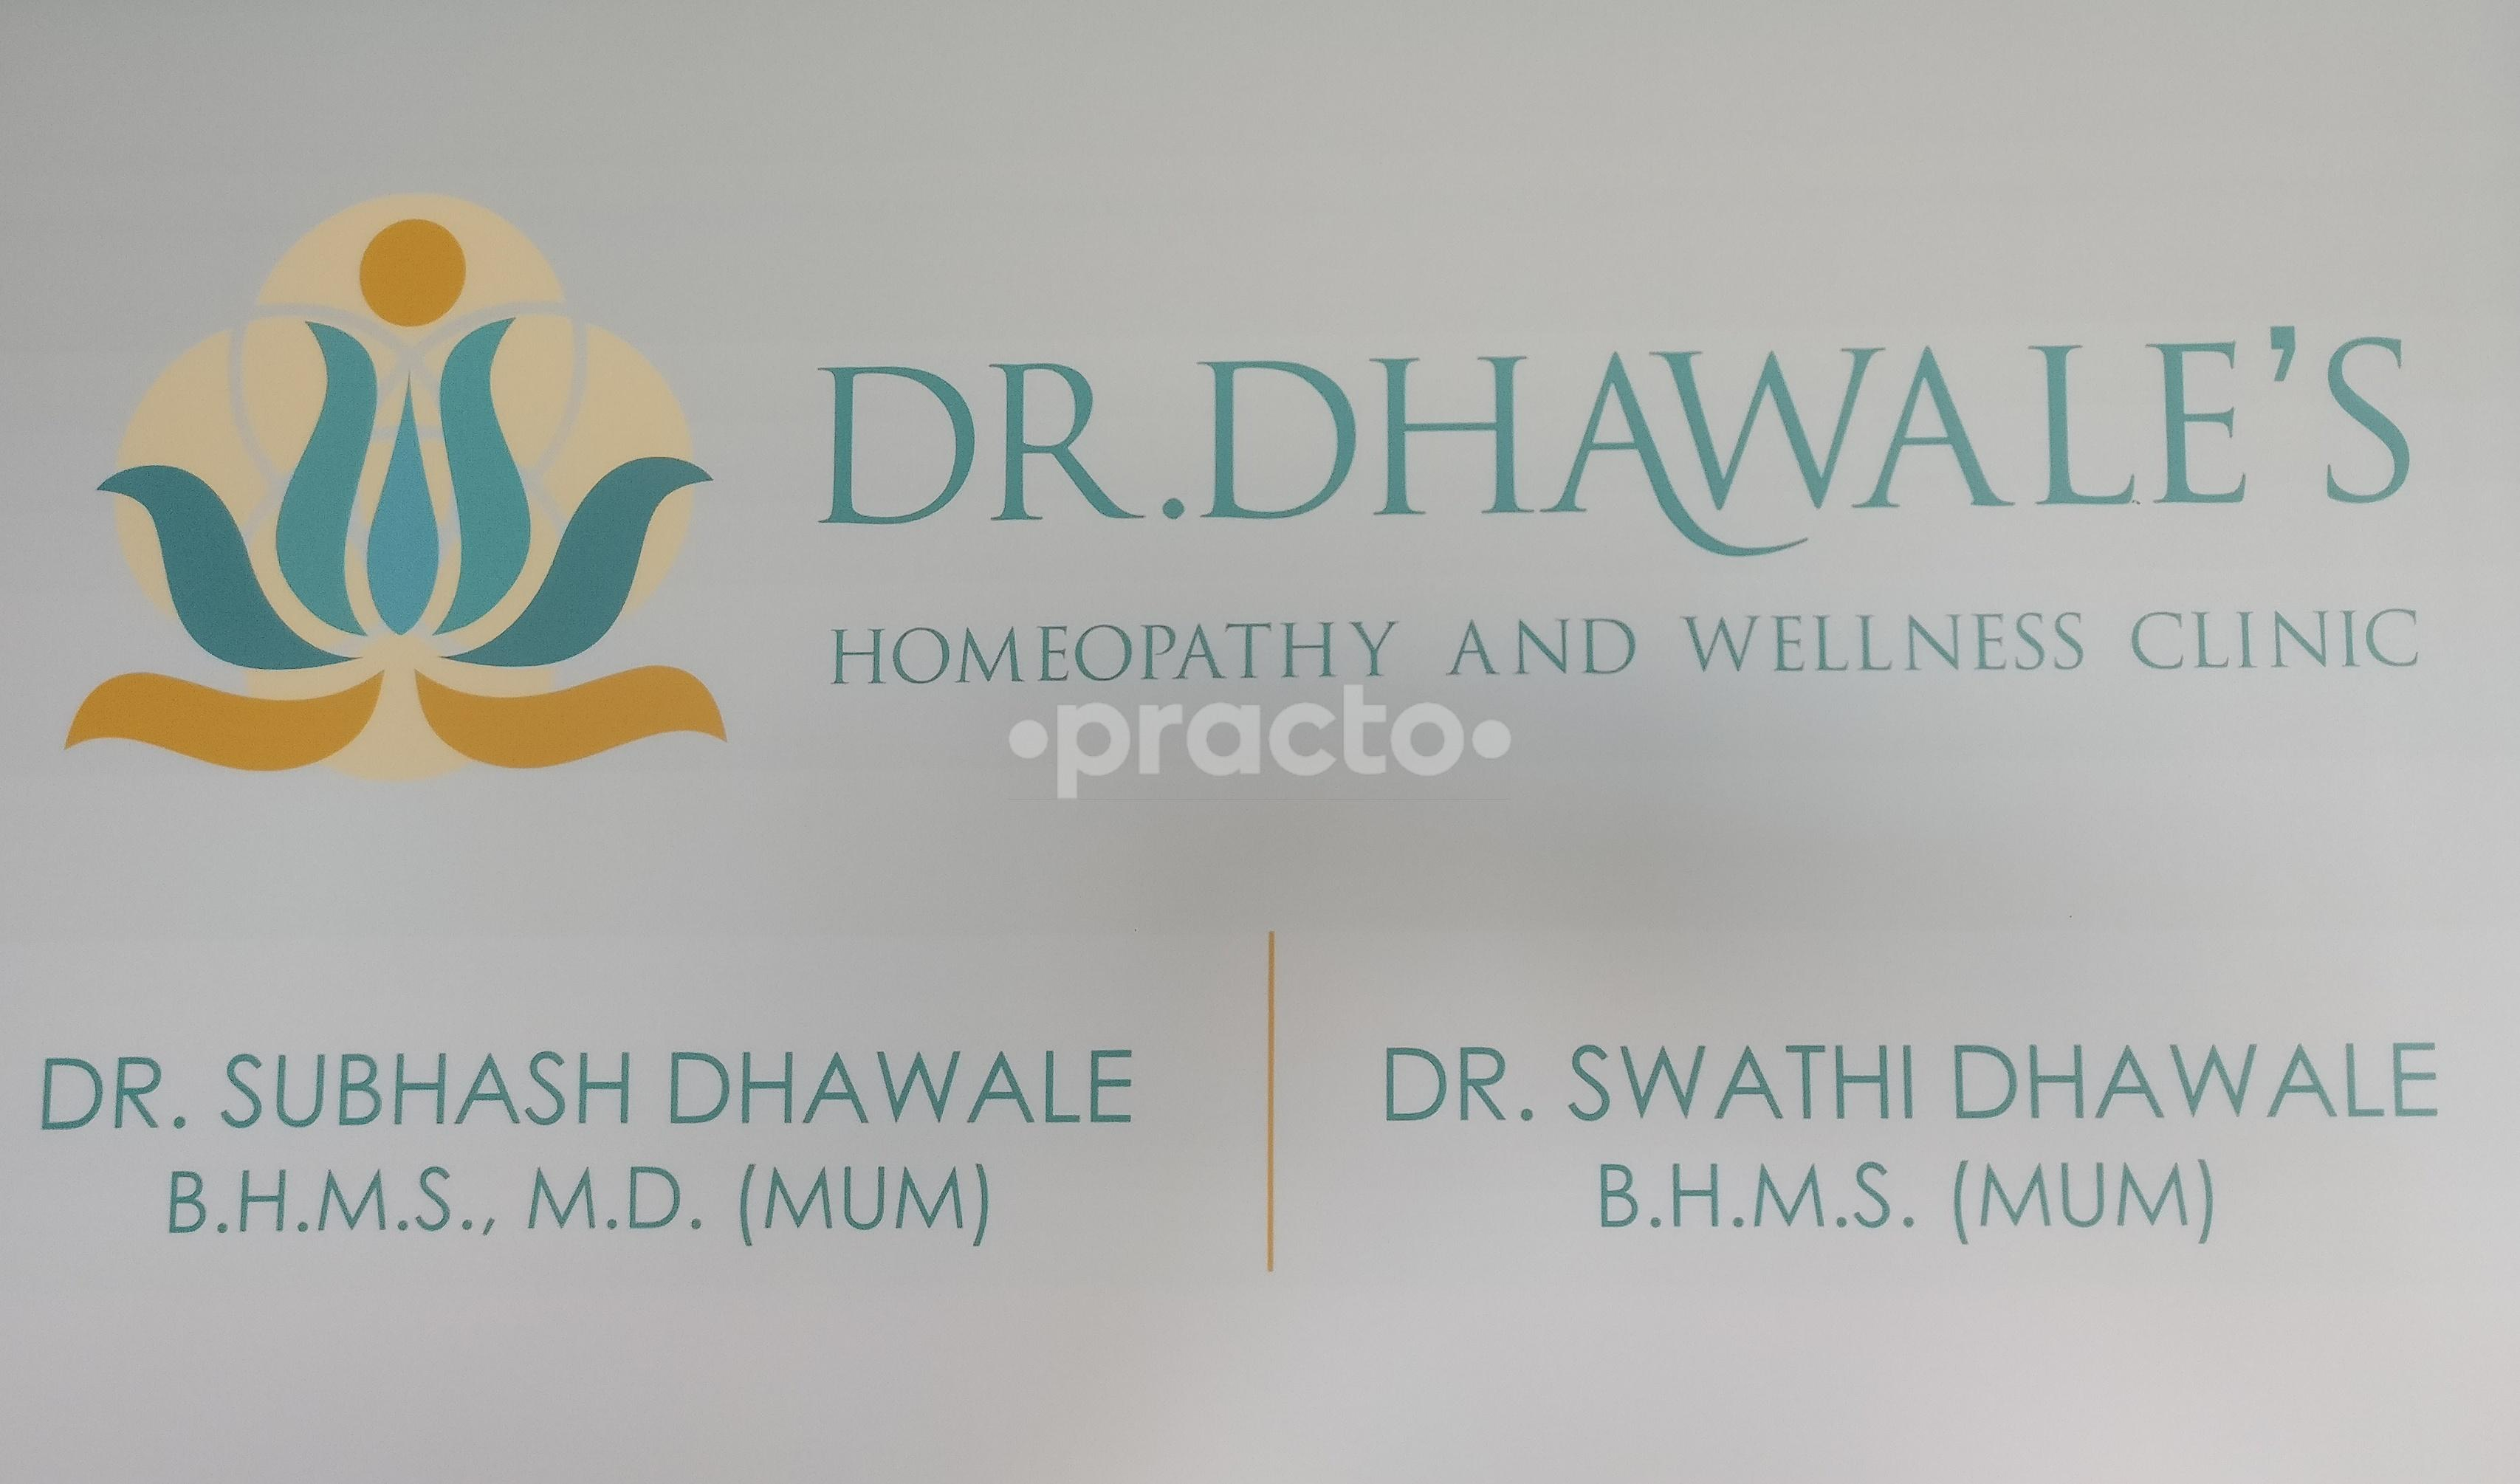 Dr. Dhawale's  Homeopathy and Wellness Center